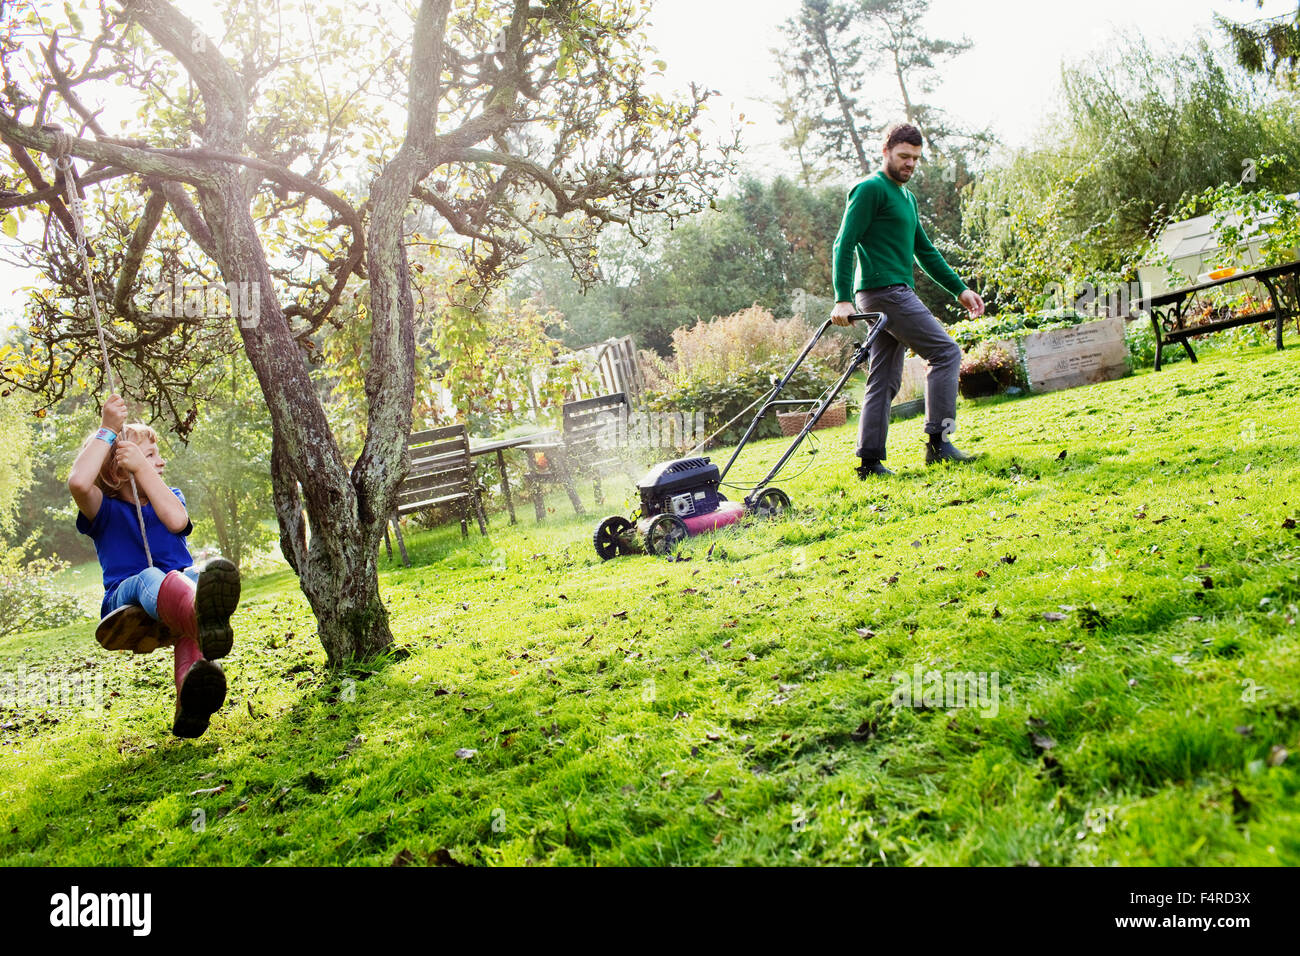 Sweden, Skane, Osterlen, Borrby, Father and son (4-5) in domestic garden - Stock Image